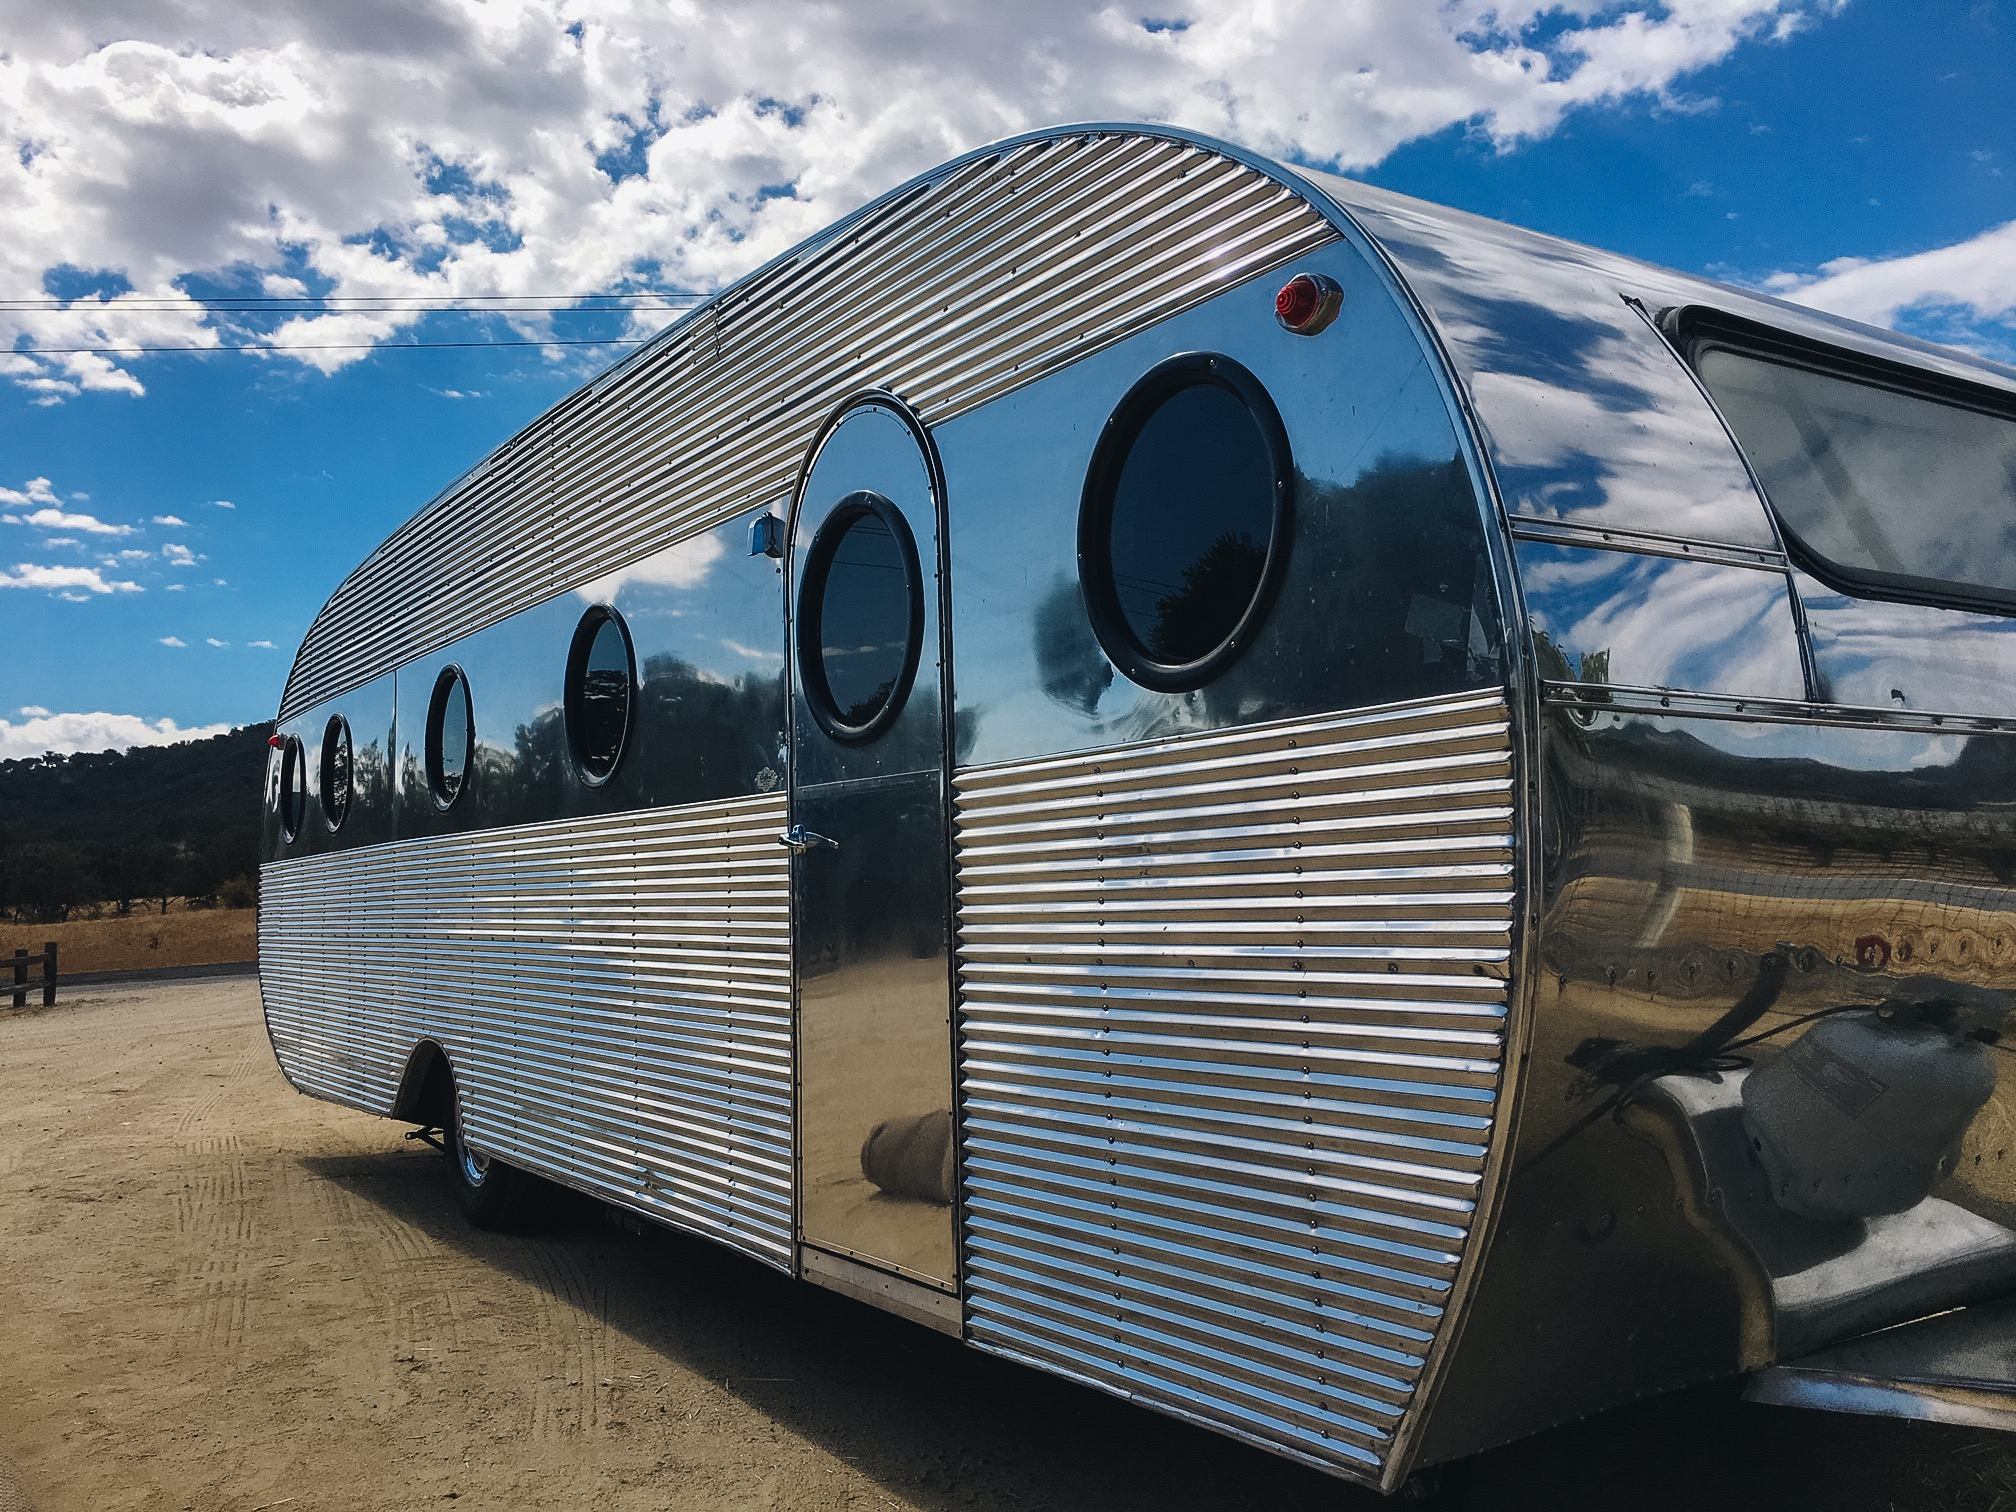 1948 Airfloat James Dean vintage Trailer with portholes